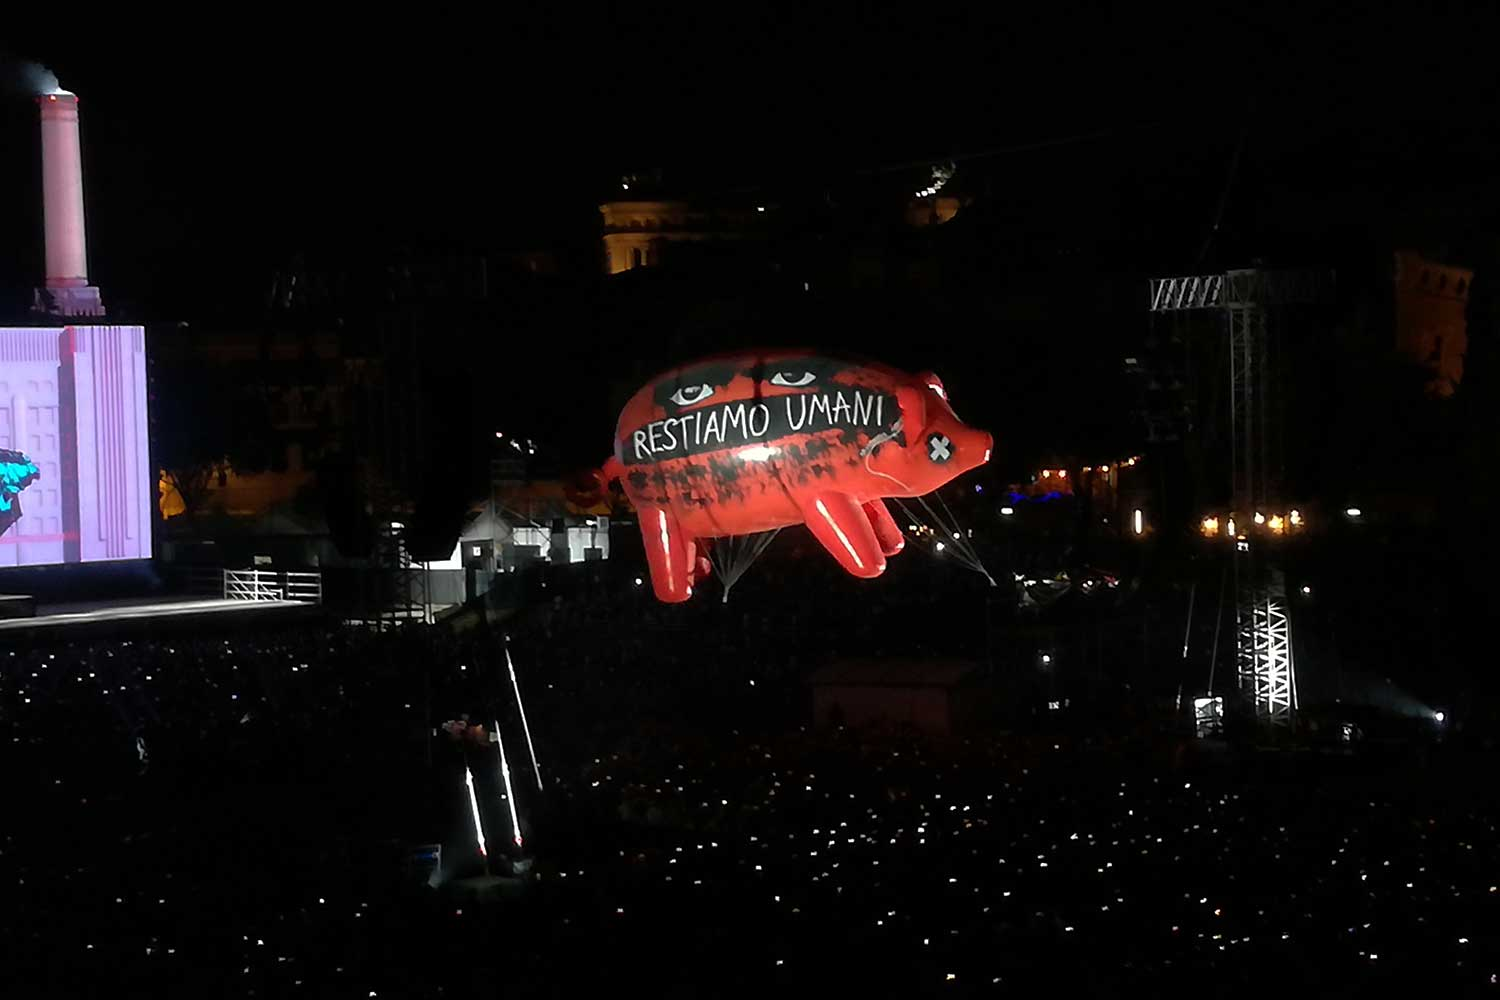 Restiamo Umani pigs roger waters